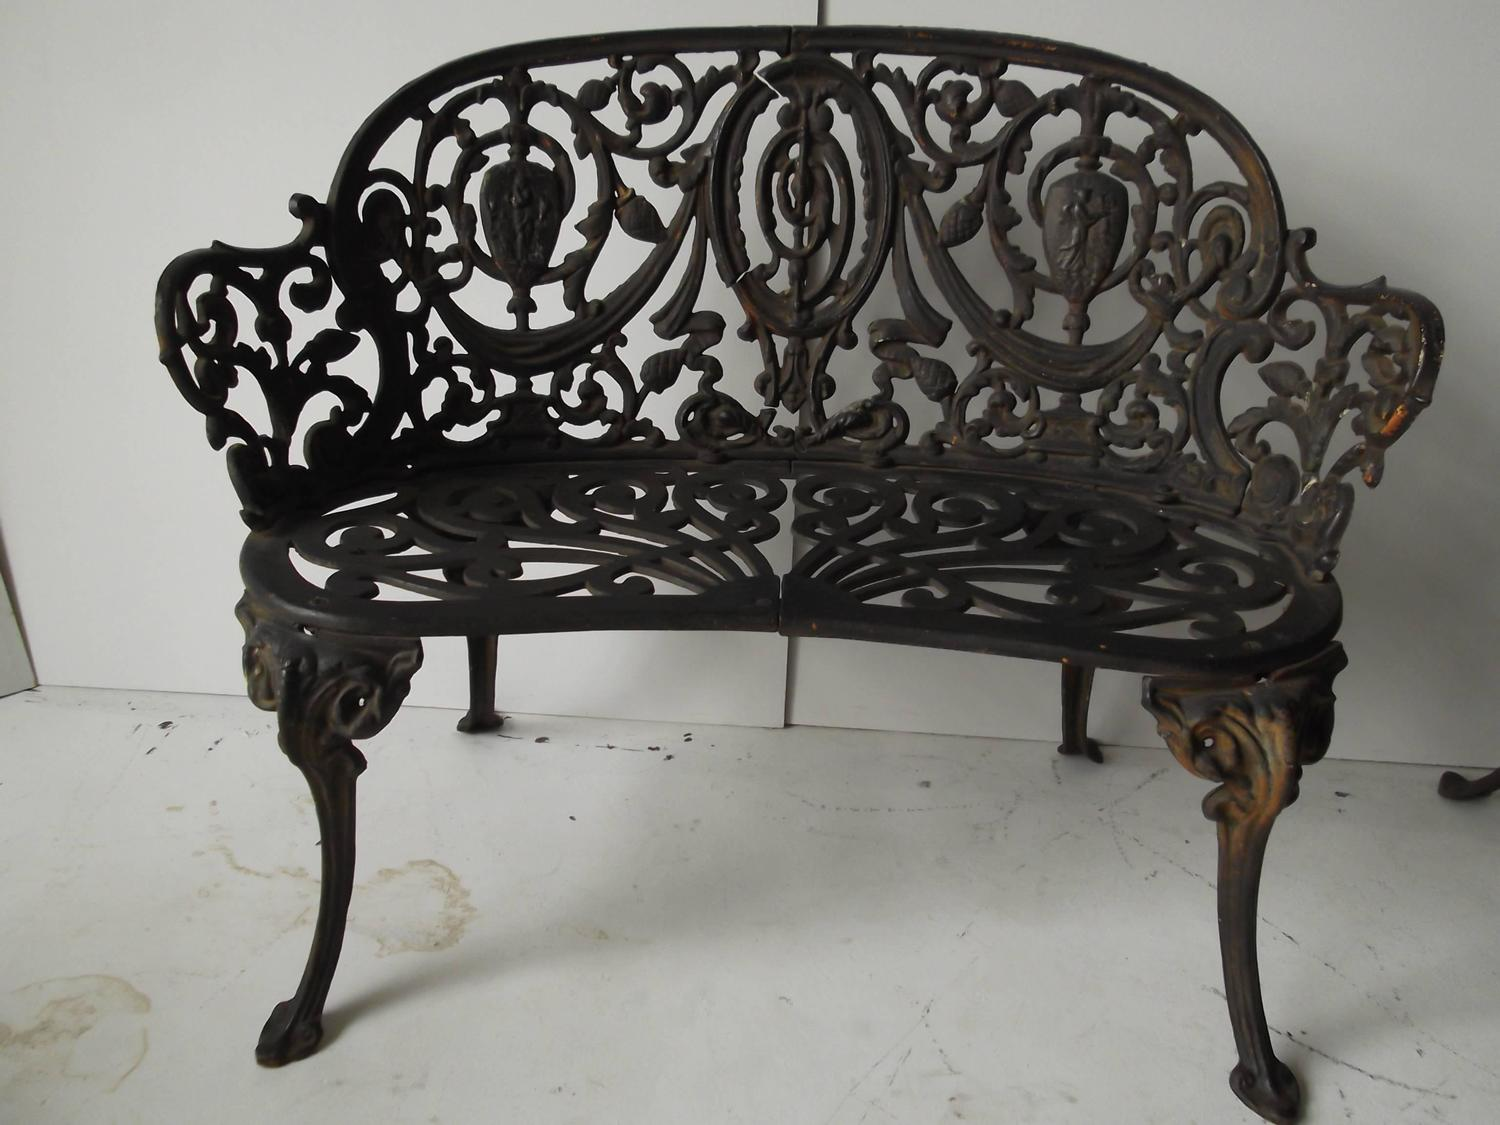 of Antique Ornate Cast Iron Diminutive Garden Bench Seats For Sale ...